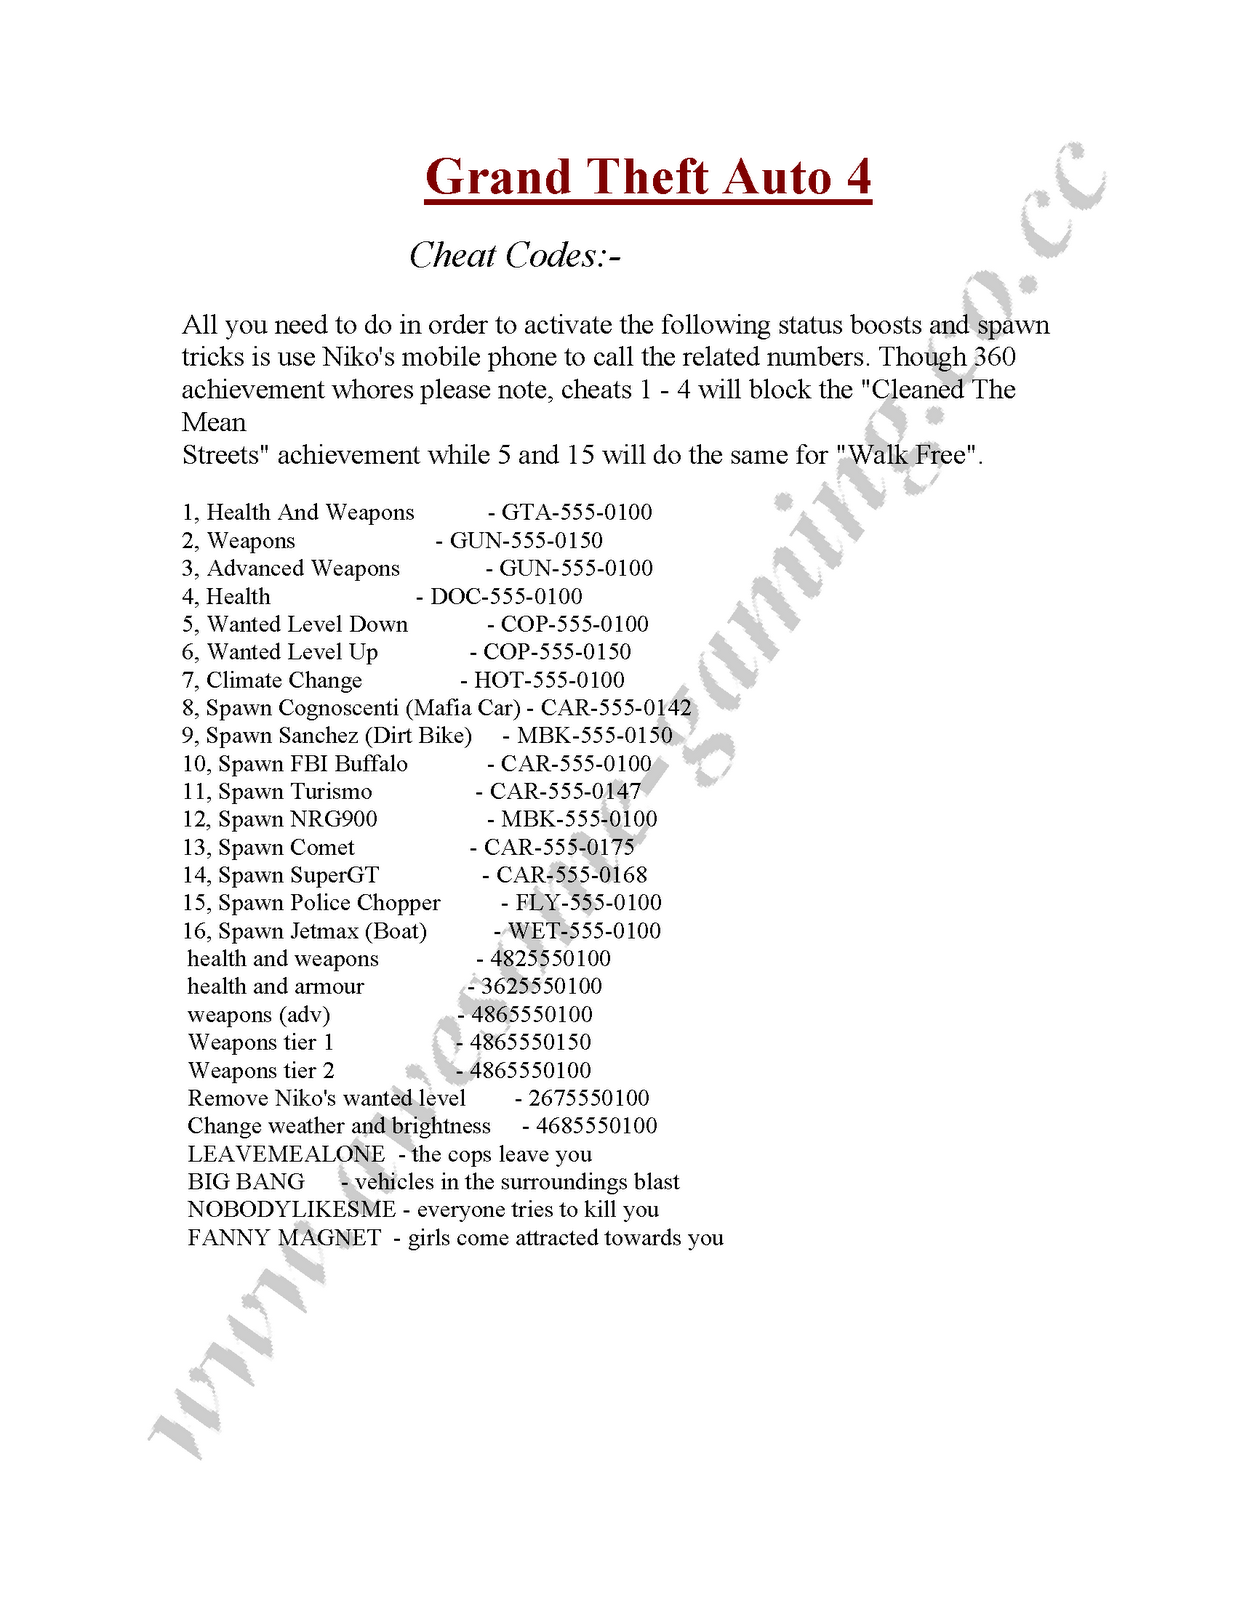 cheat codes for grand theft auto five for playstation 3